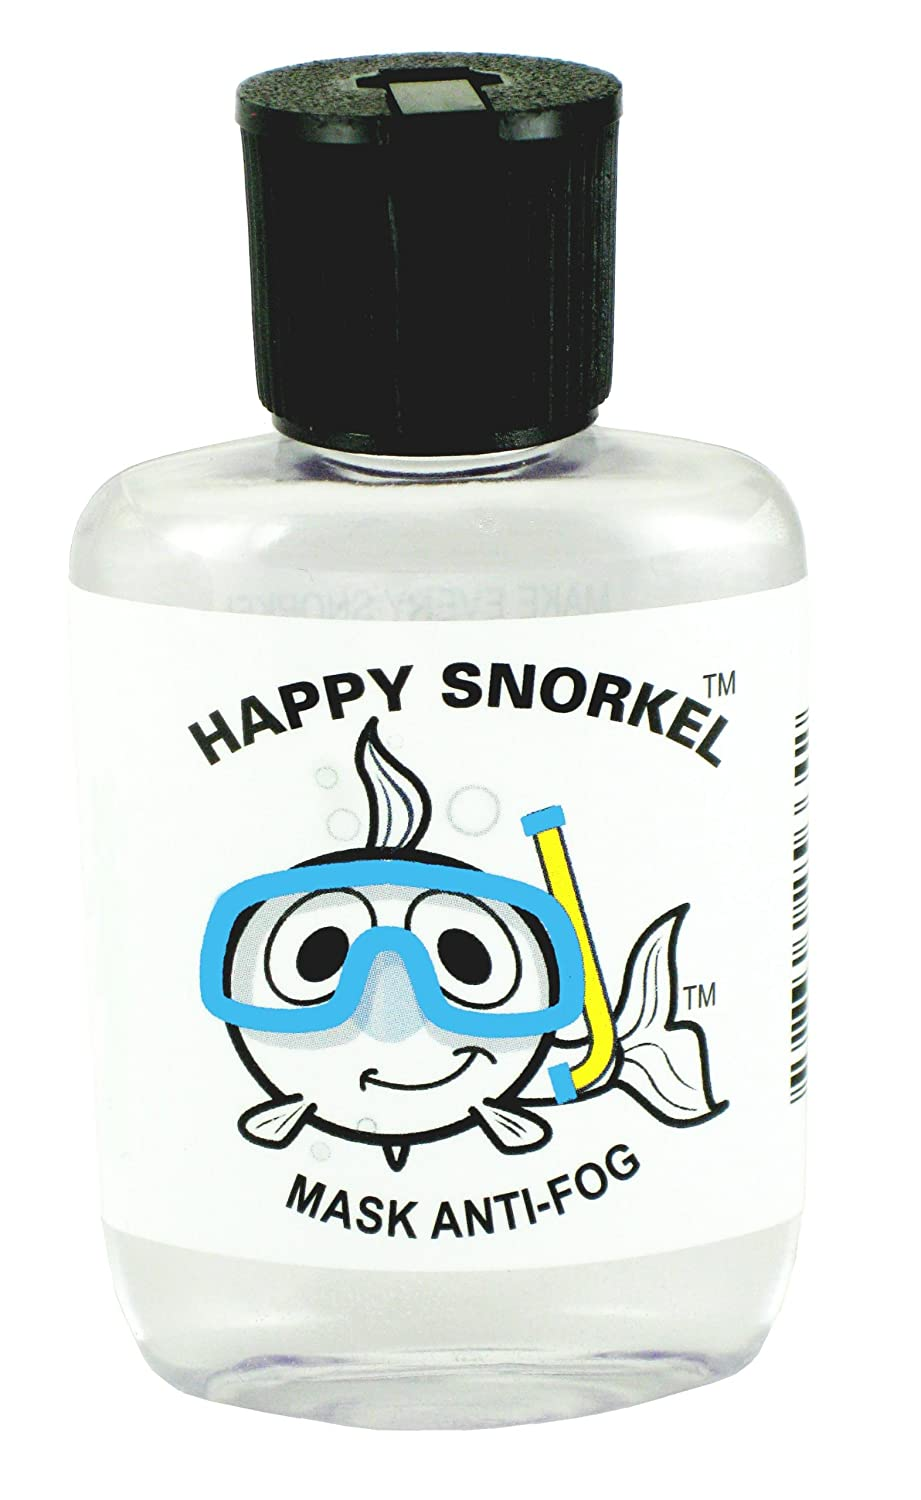 4. Happy Snorkel Mask Anti Fog